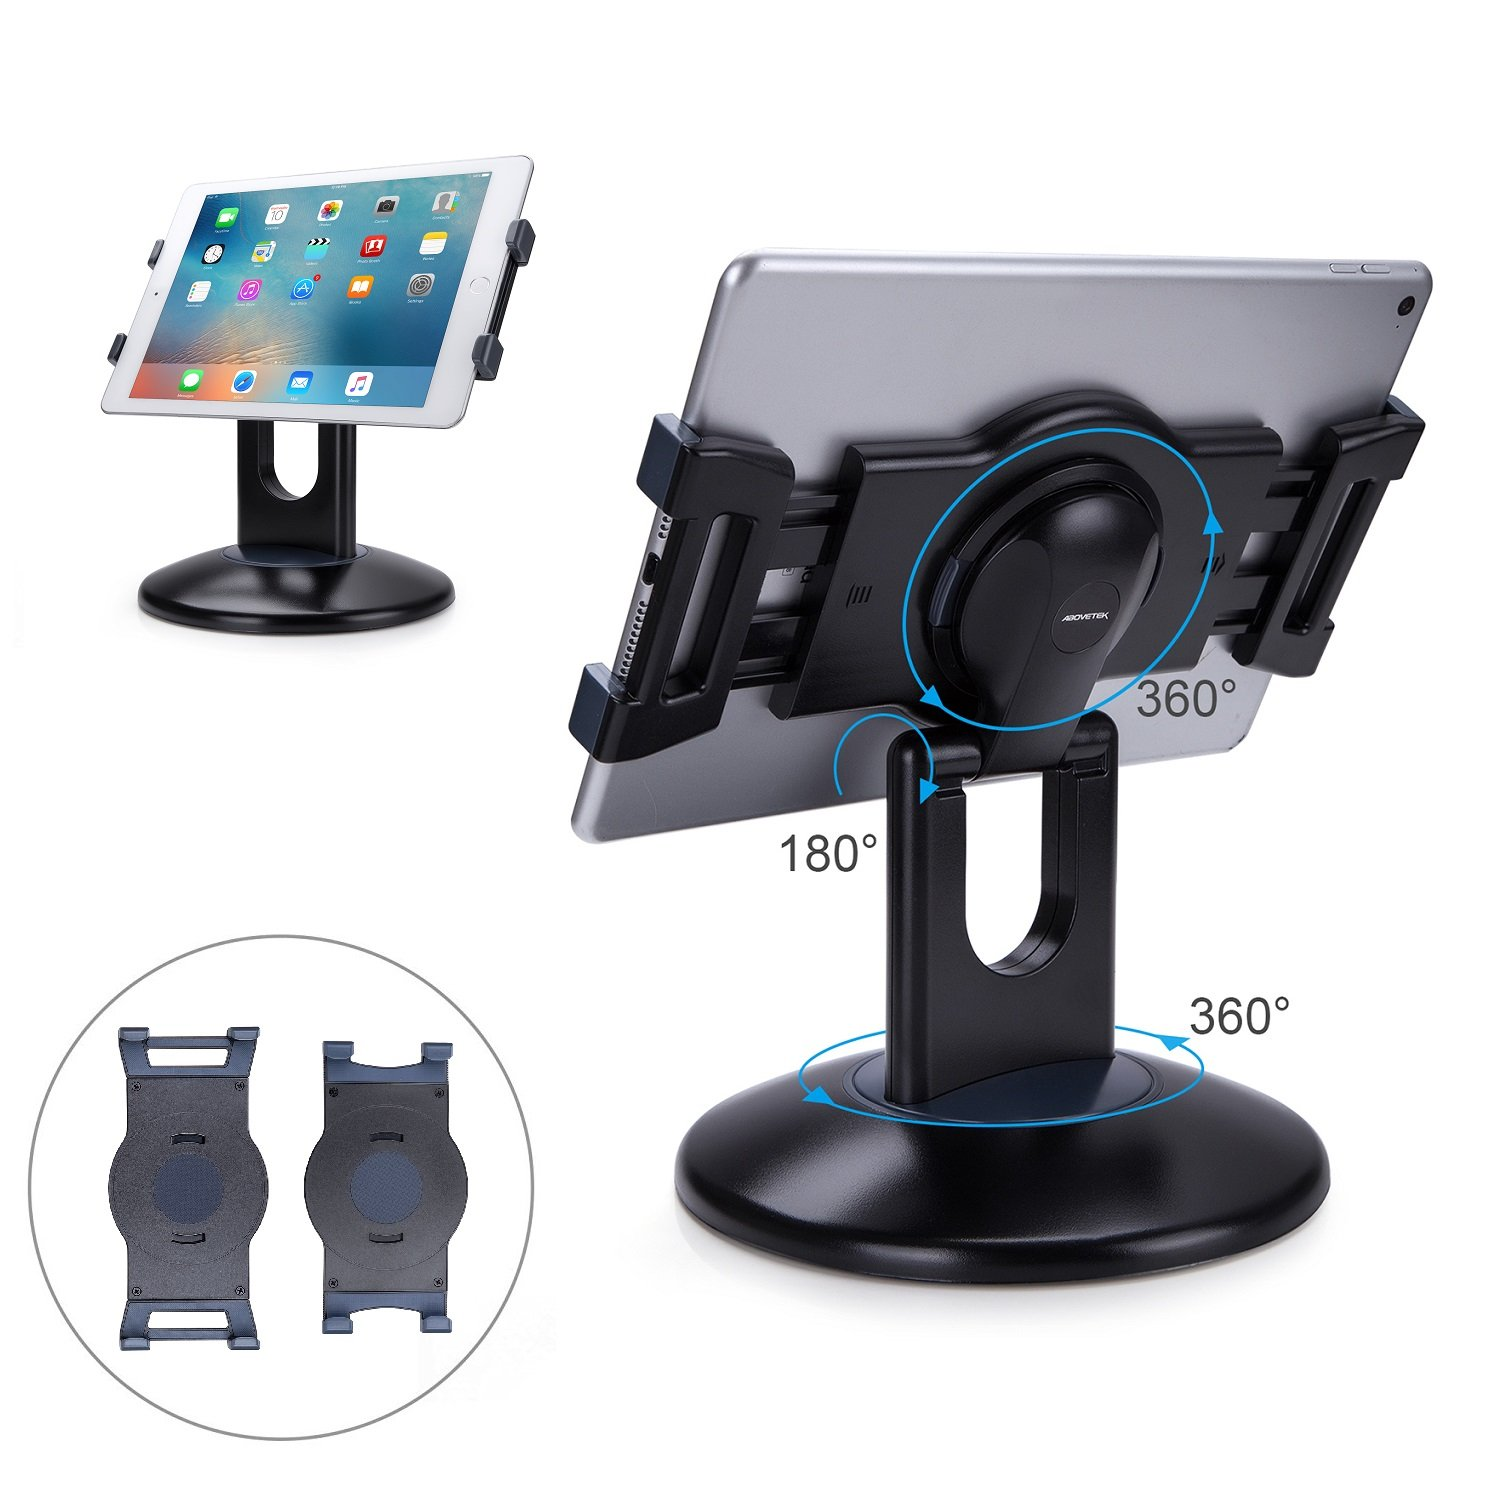 AboveTEK Retail Kiosk iPad Stand, 360° Rotating Commercial Tablet Stand, 6-13.5'' iPad Mini Pro Business Tablet Holder, Swivel Design for Store POS Office Showcase Reception Kitchen Desktop (Black)